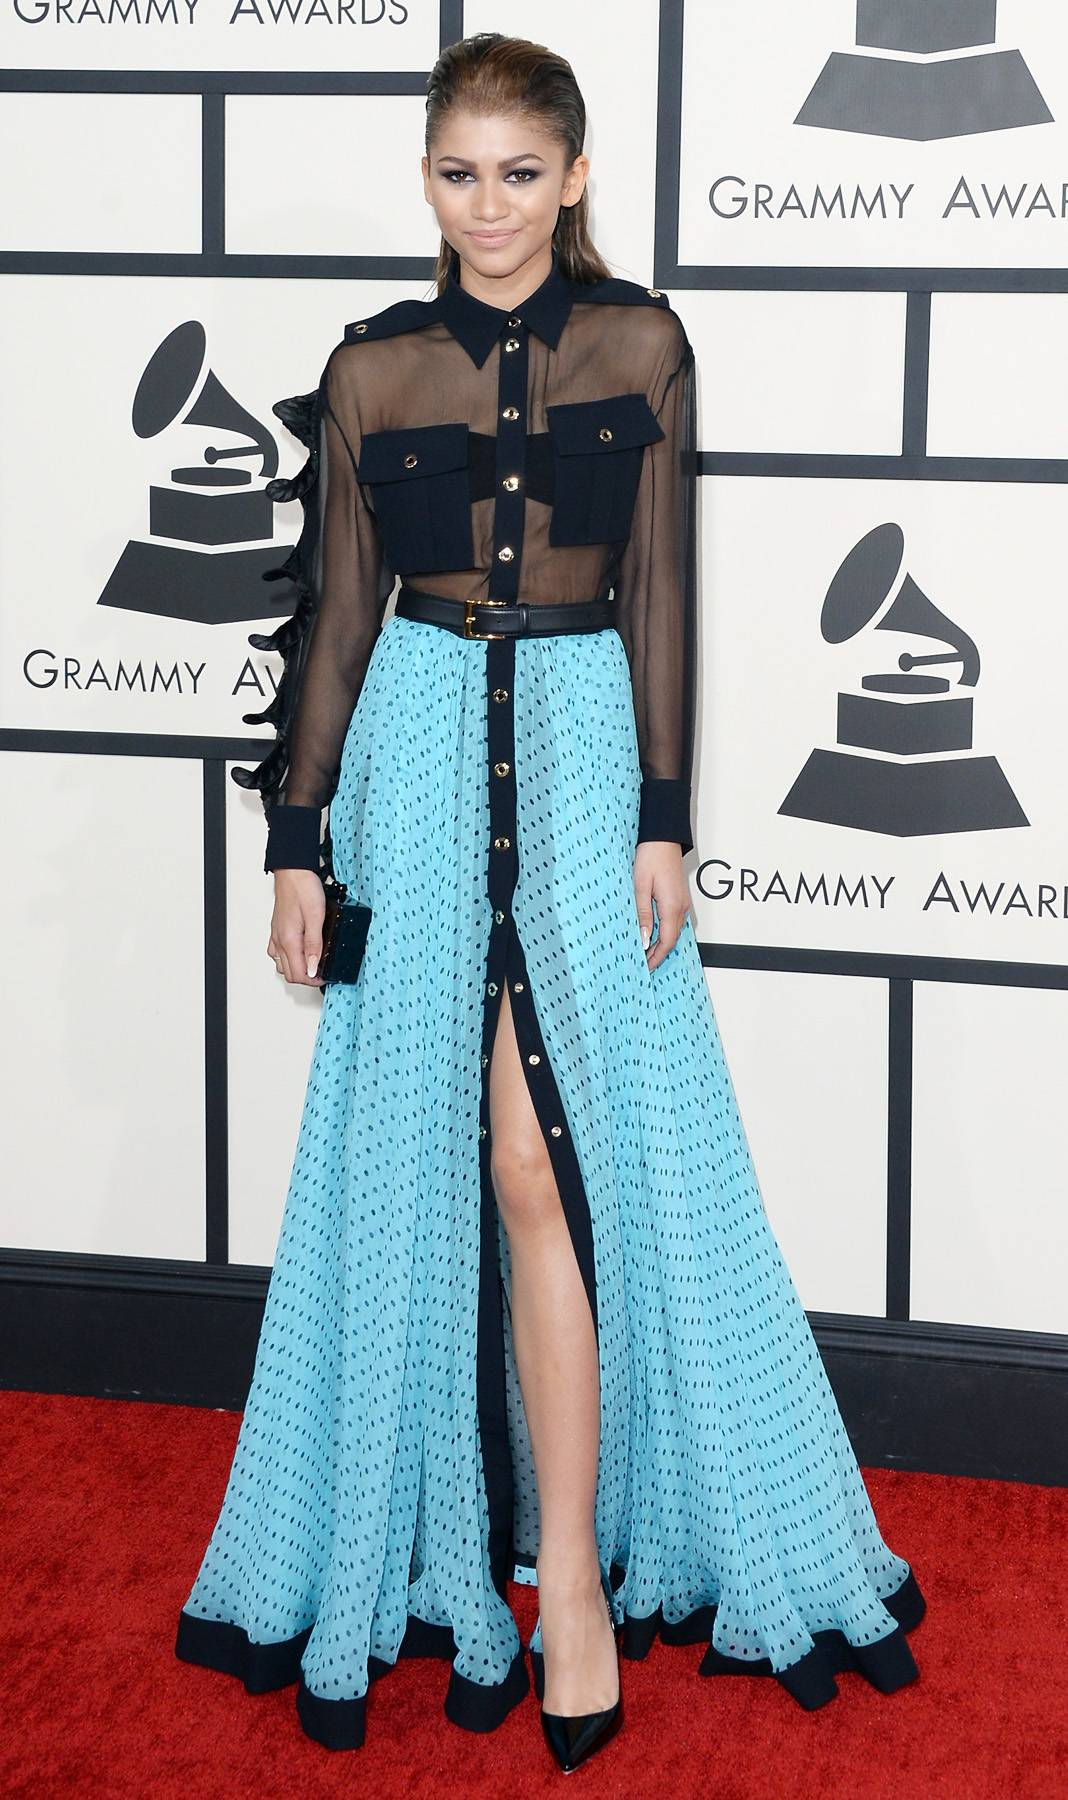 Sheer Darling - A little sheer plus a flowing, polka-dot skirt is pure magic on the red carpet, while her slicked-back 'do adds a touch of sophistication.   (Photo: Jason Merritt/Getty Images)